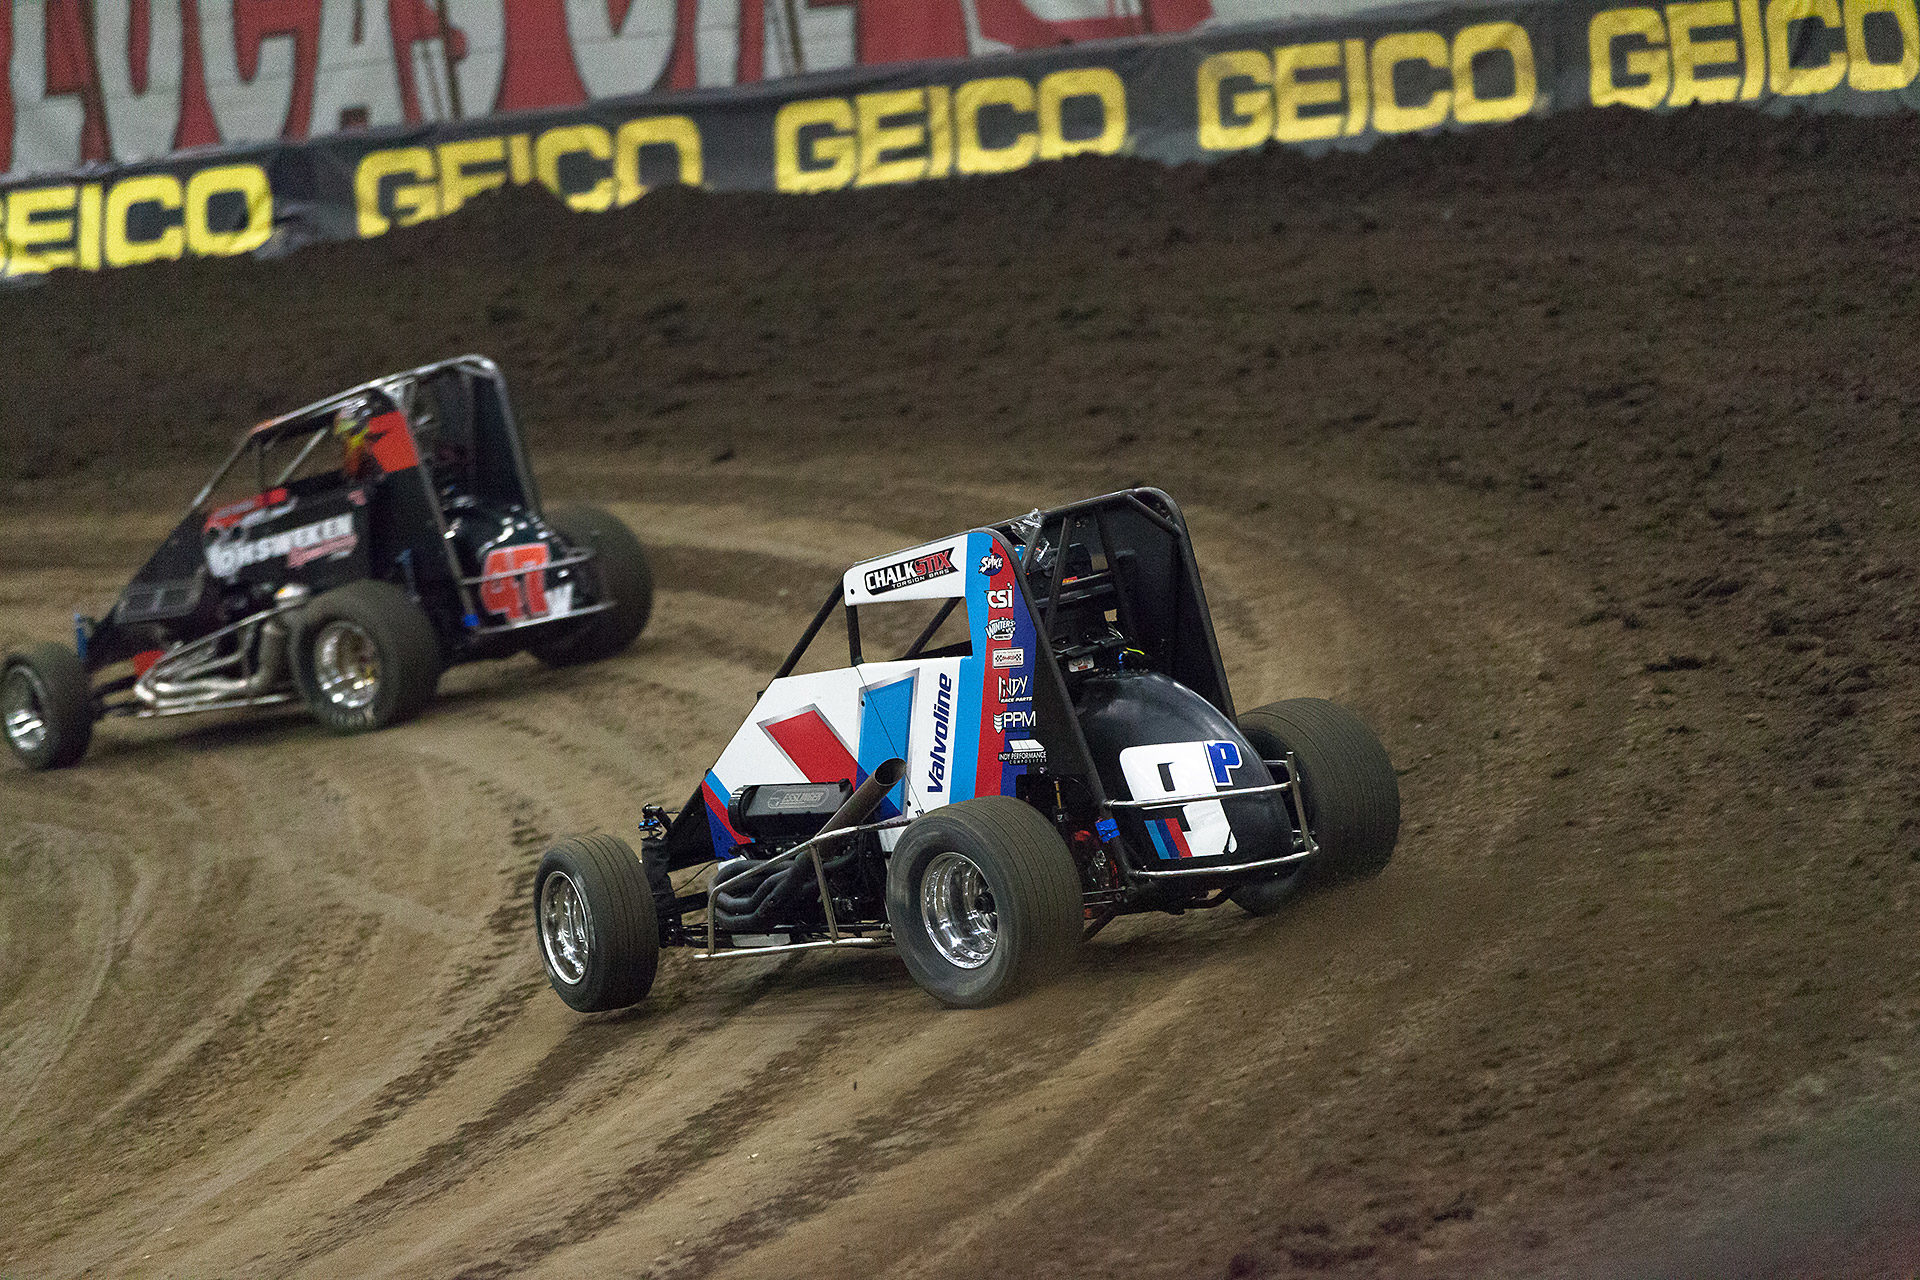 Wednesday January 11, 2017 TULSA, Oklahoma - Parker Price-Miller looked fast in his new Valvoline ride on Hard Rock Casino, Tulsa Night of The 2017 Chili Bowl Nationals ( Jeffrey Turford / TDP )